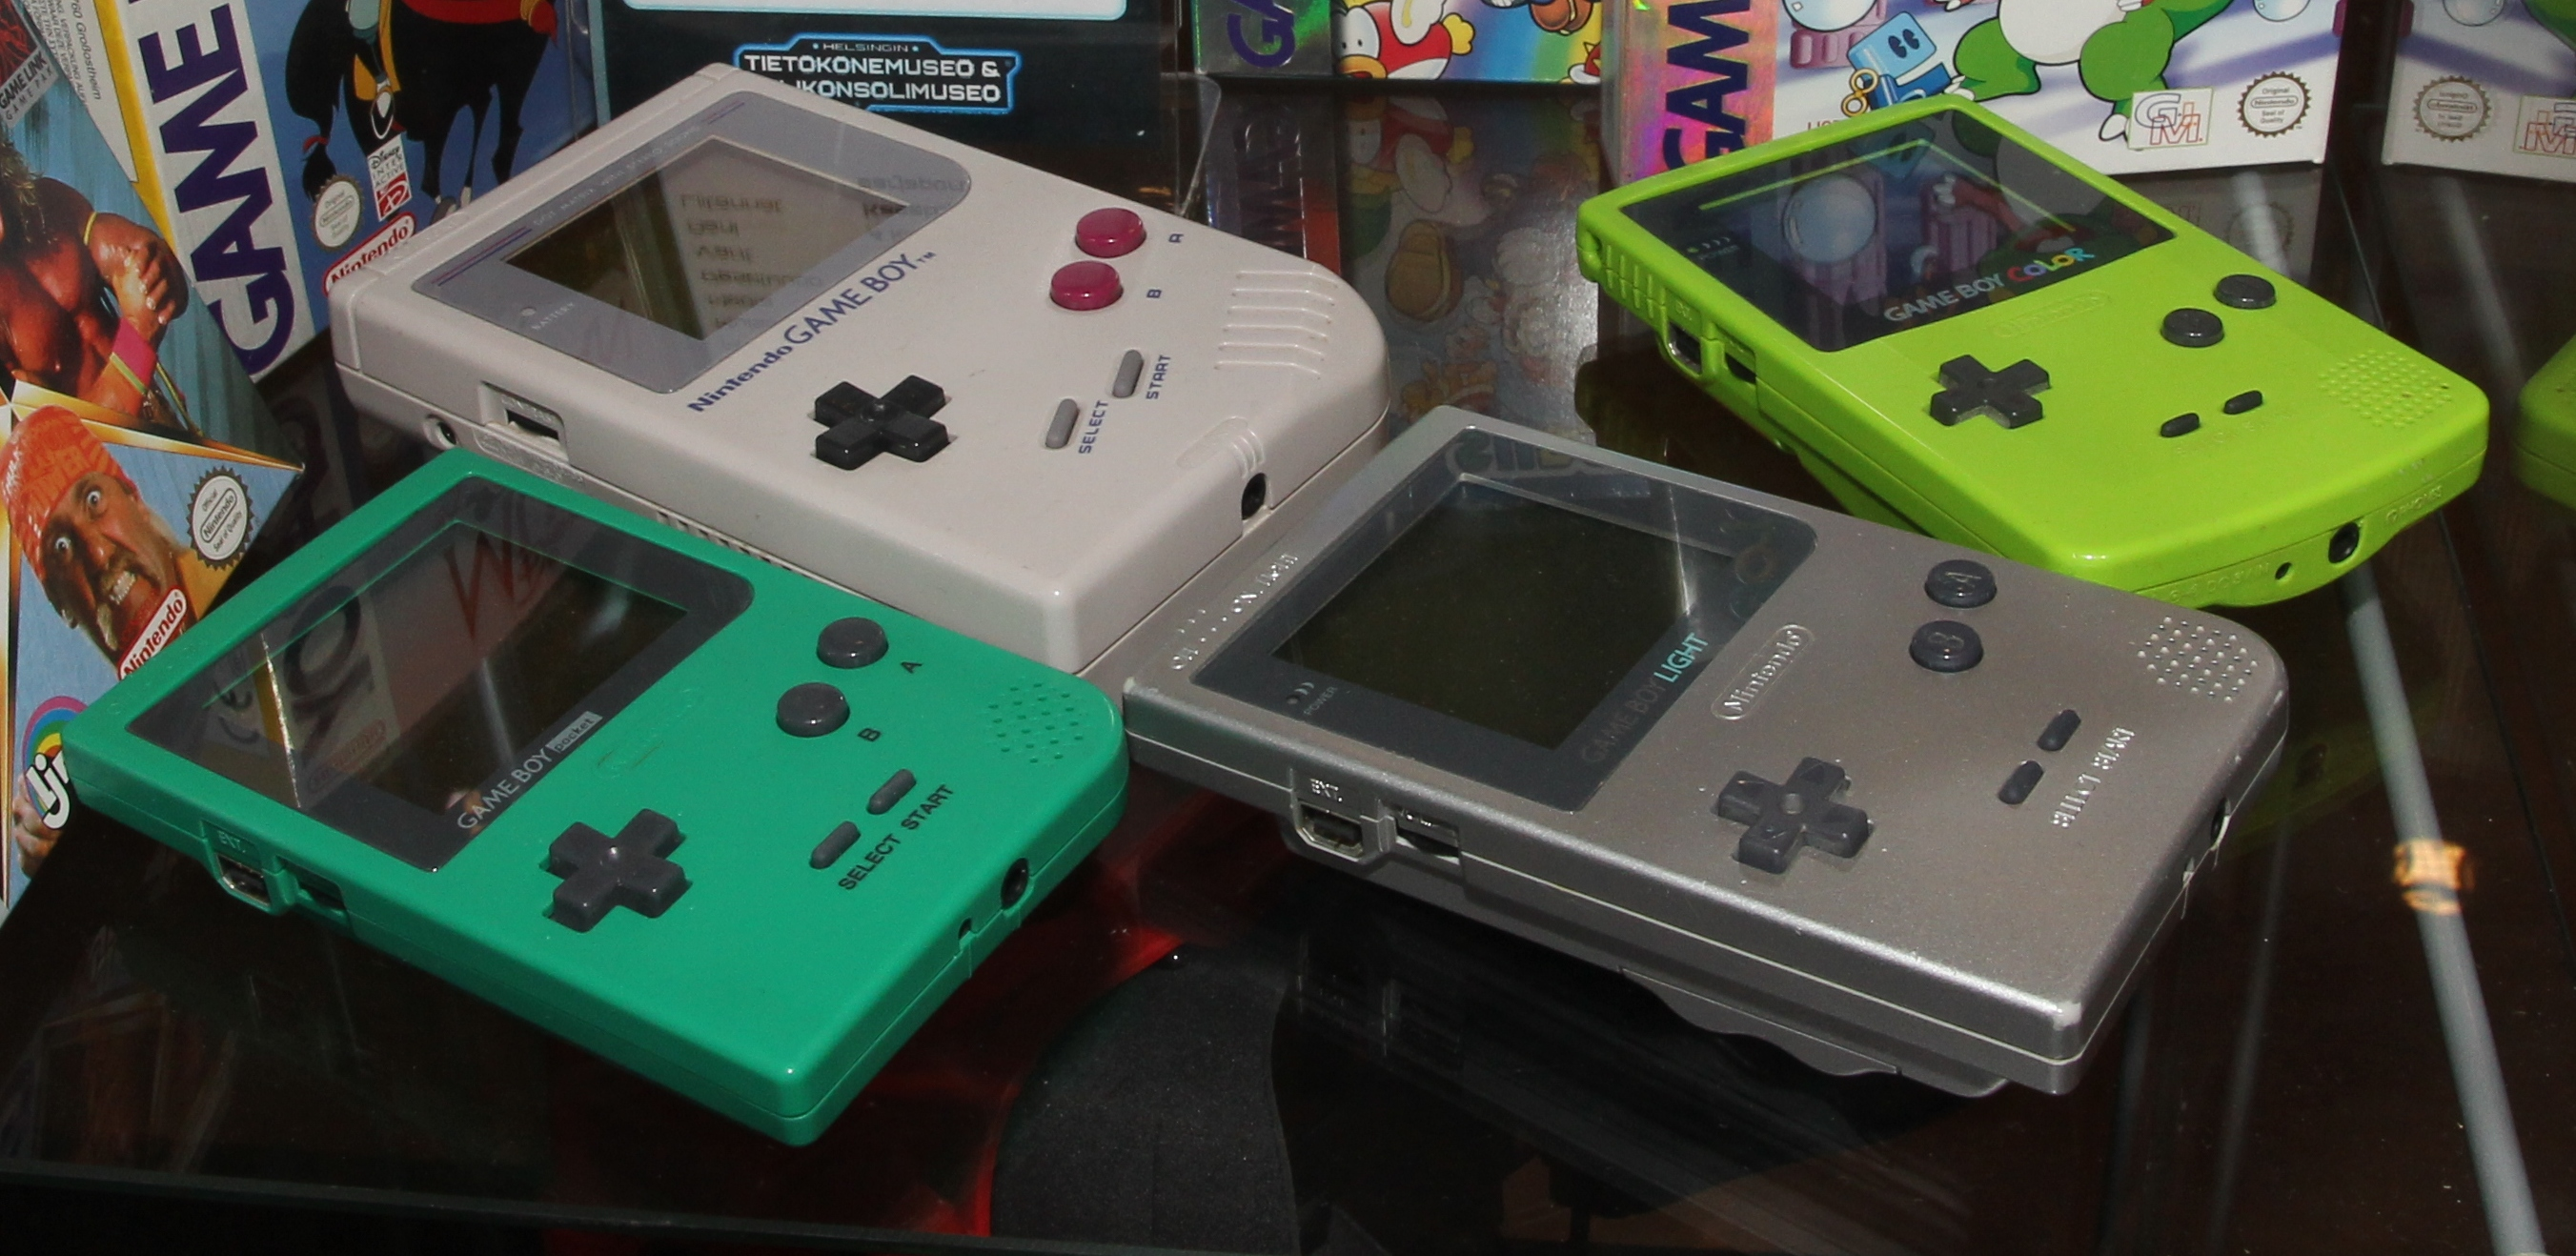 Gameboy color and advance rpg games - Gameboy Color And Advance Rpg Games Nintendo_game_boy _game_boy_pocket _game_boy_light_and_game_boy_color_tietokonemuseo